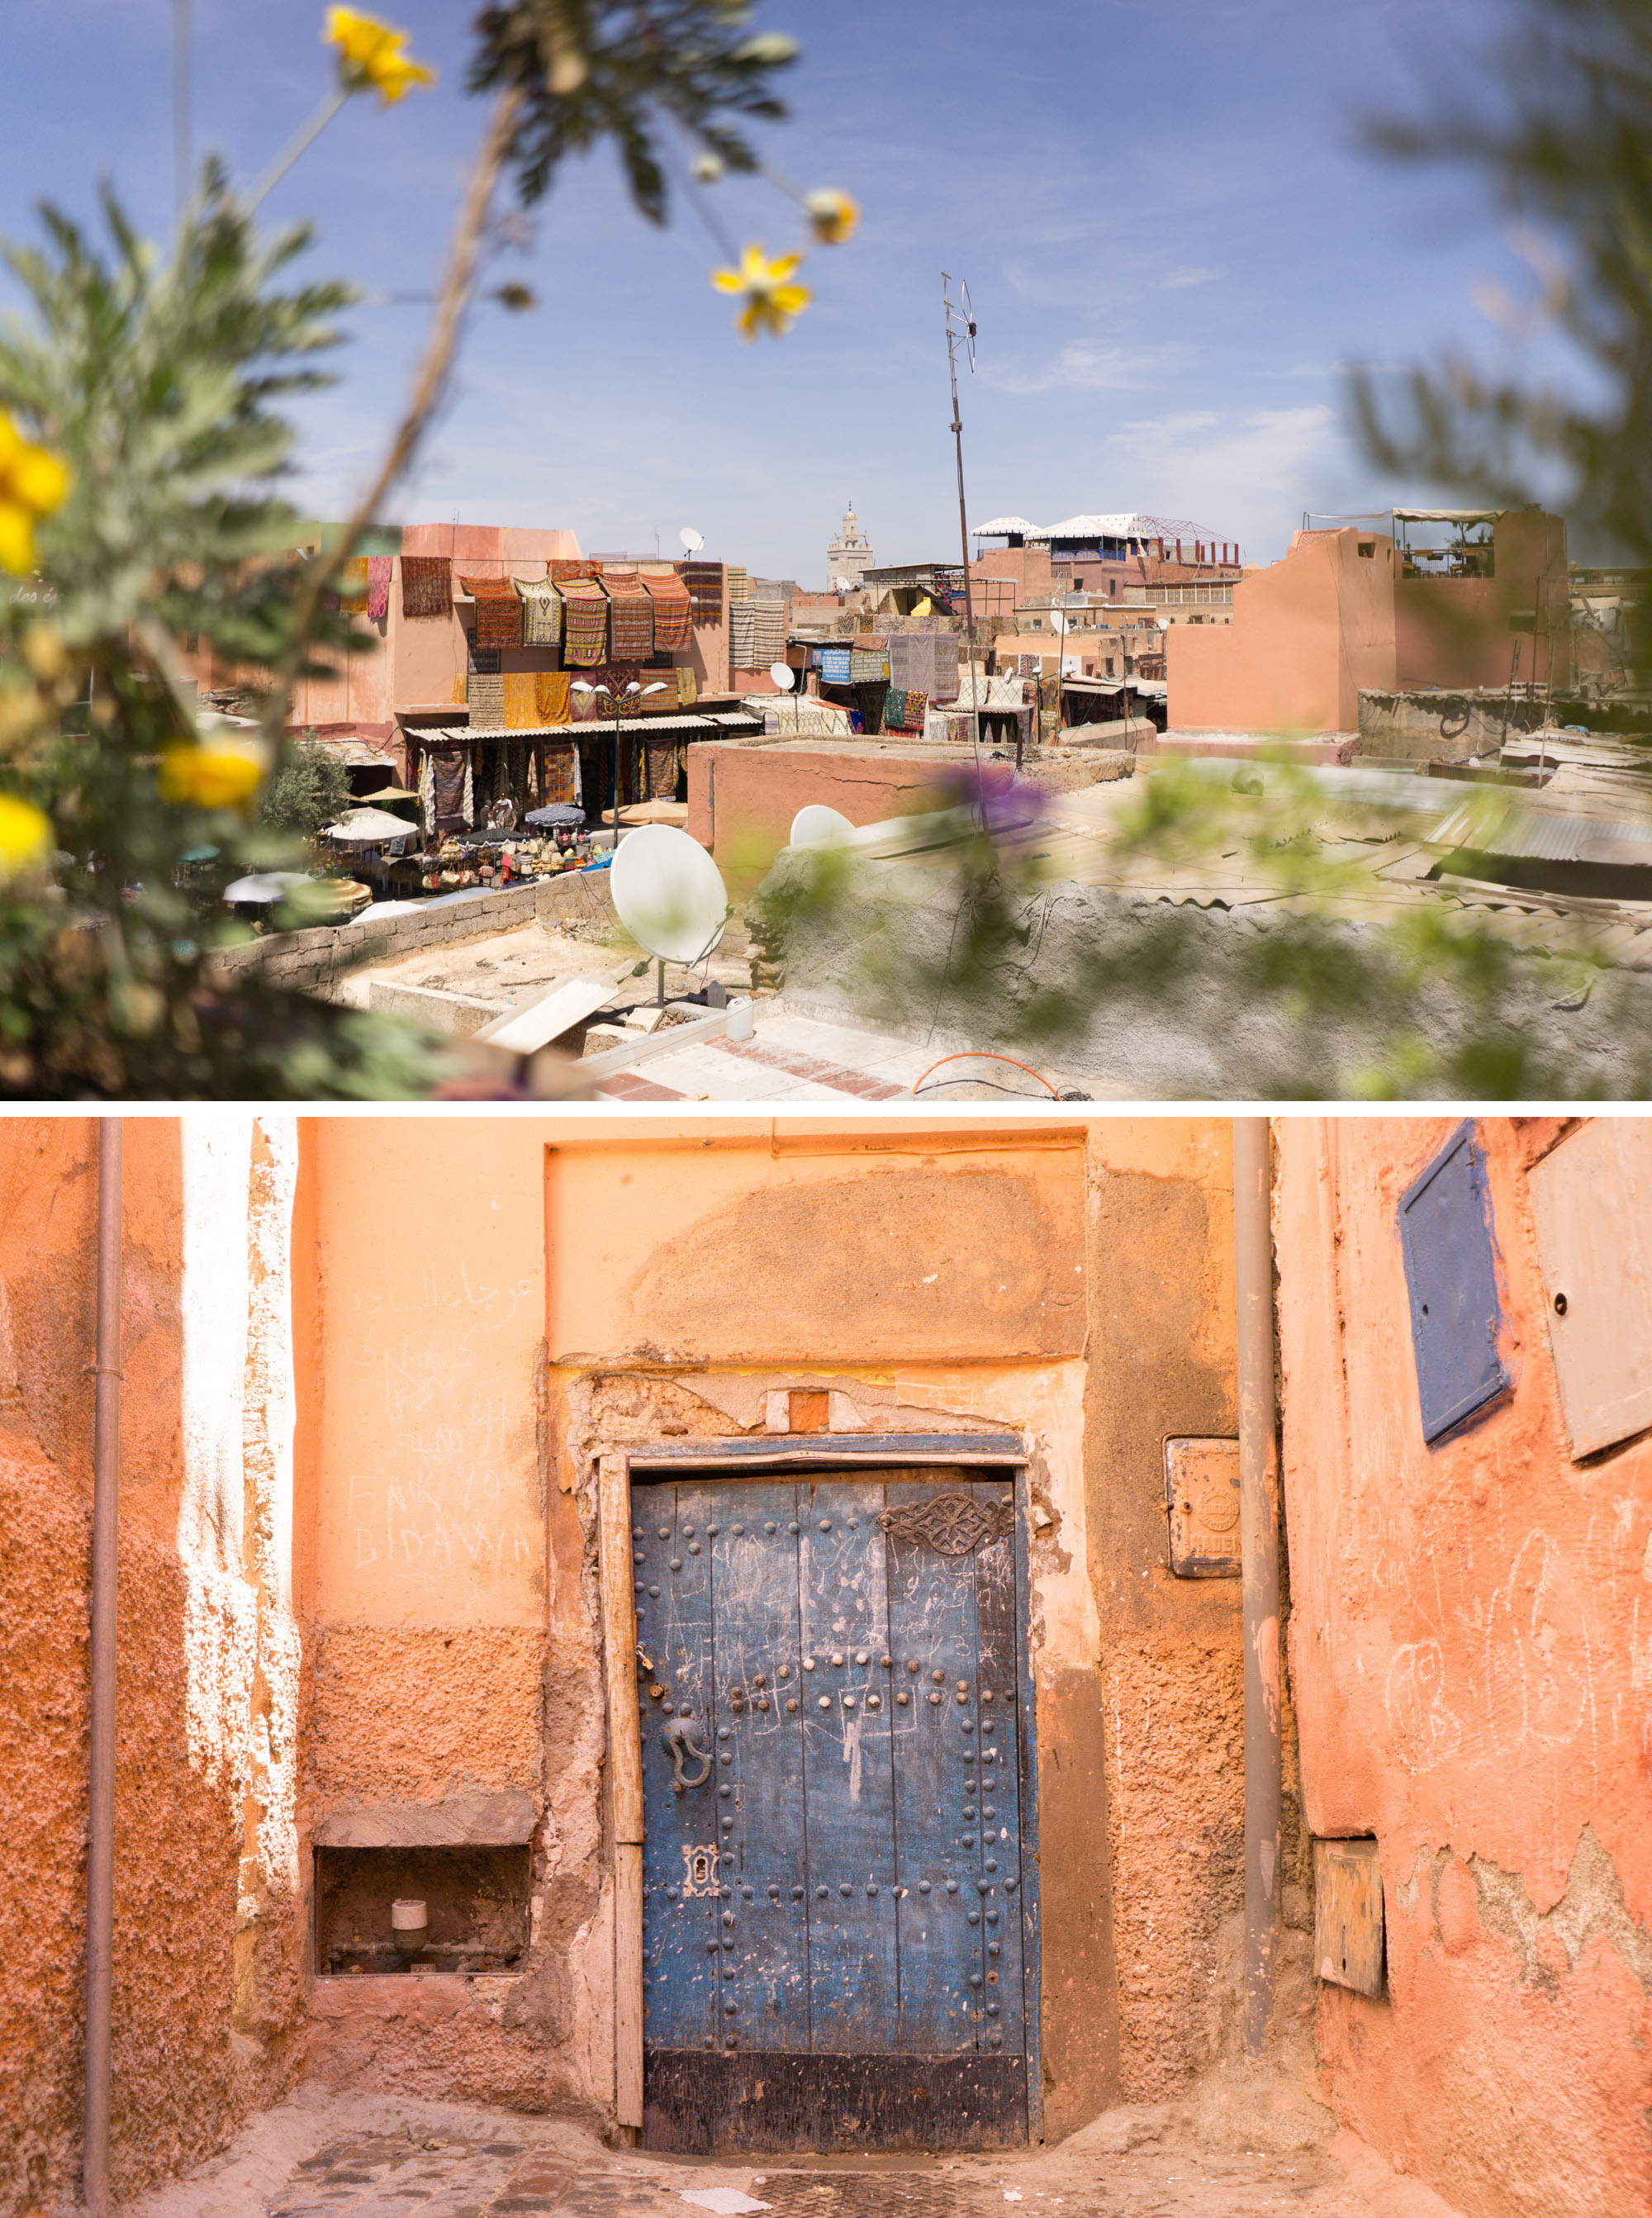 Marrakesh Travel Guide | Experience colourful and vibrant Marrakesh with this travel guide filled with inspiring travel photography and tips.